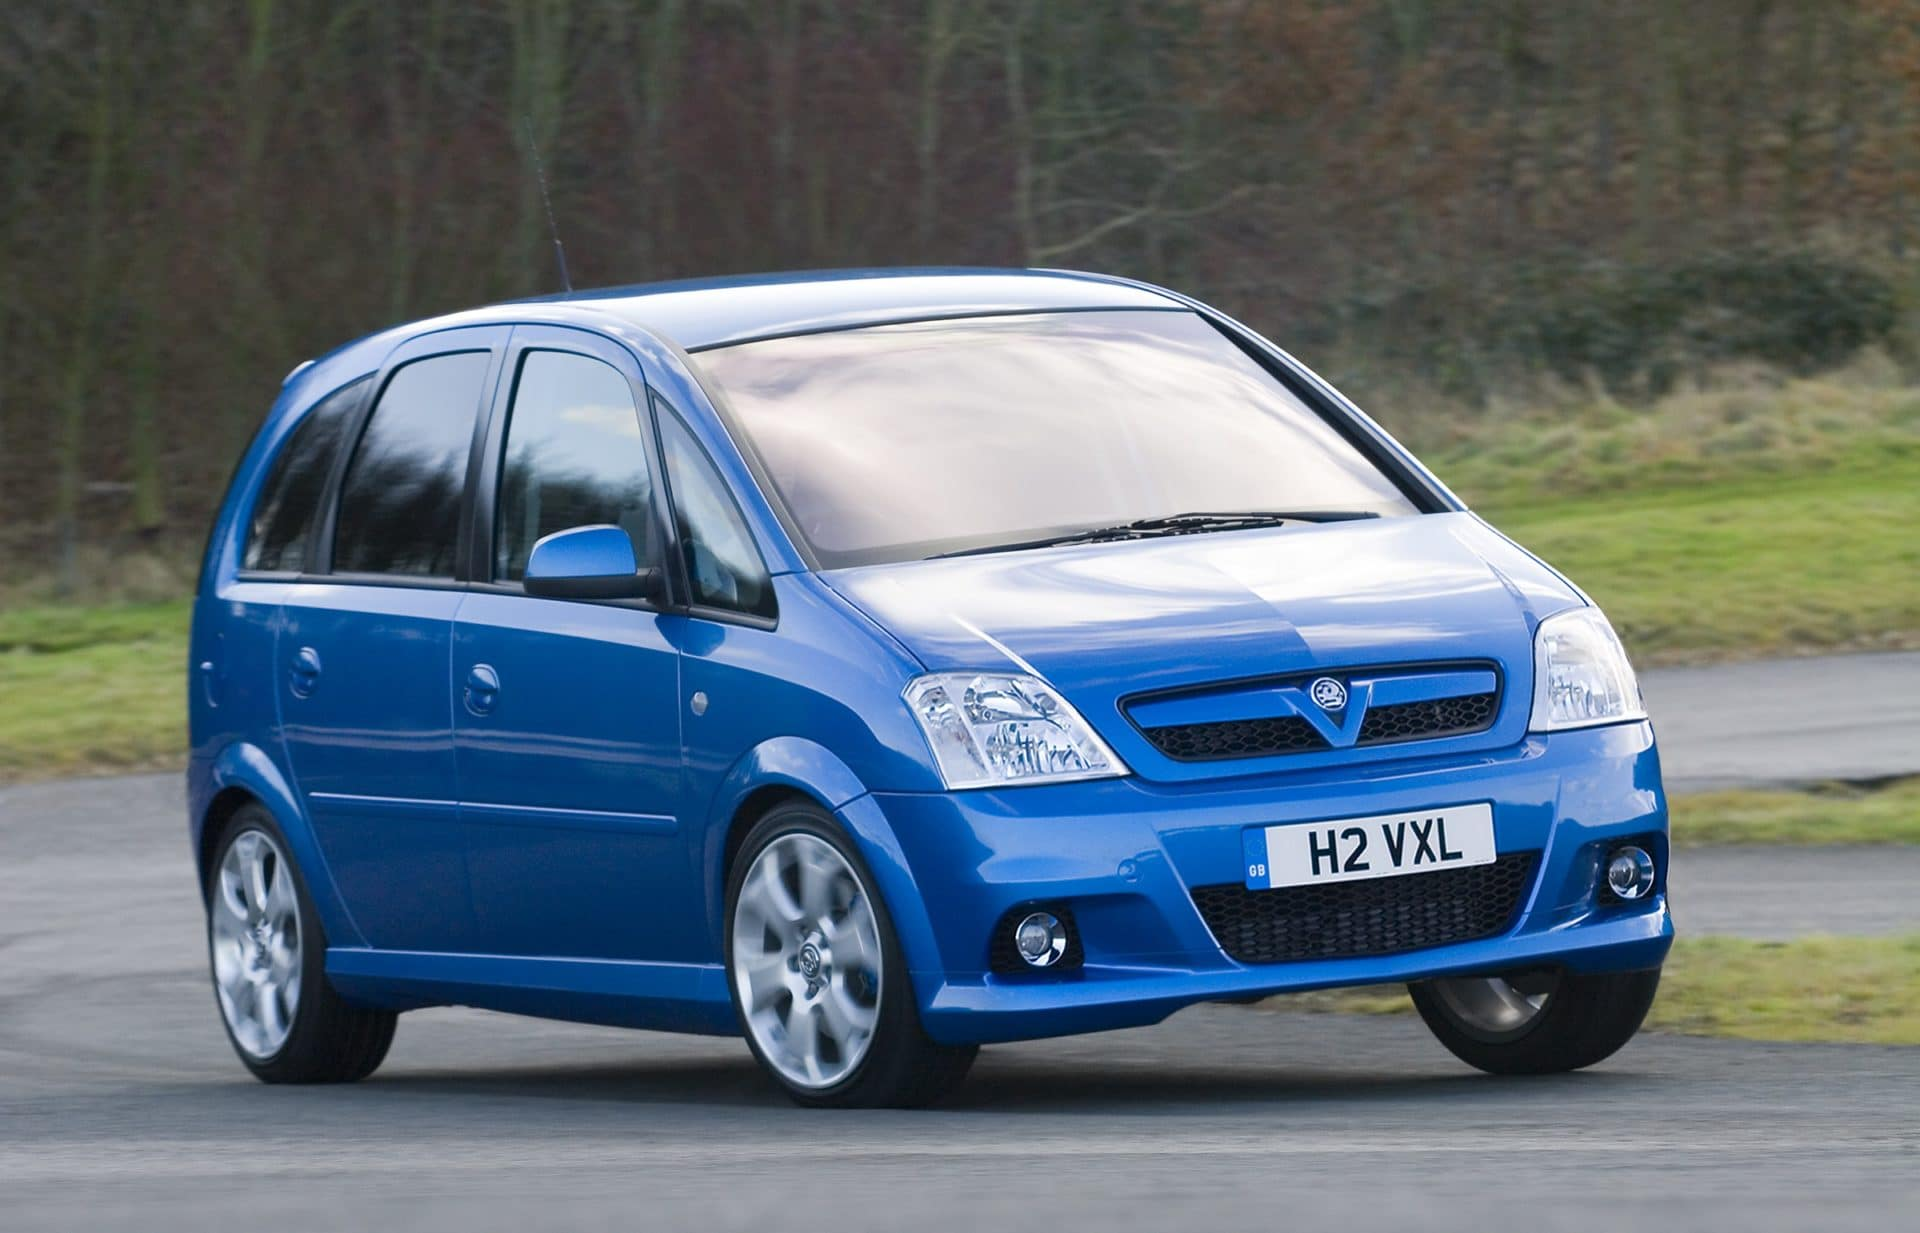 Vauxhall, Vauxhall Meriva, Vauxhall Meriva VXR, Meriva VXR, VXR, Vauxhall VXR, hot hatch, motoring, automotive, adrian flux, not2grand, not2grand.co.uk, car, cars, classic car, retro car, fast car,